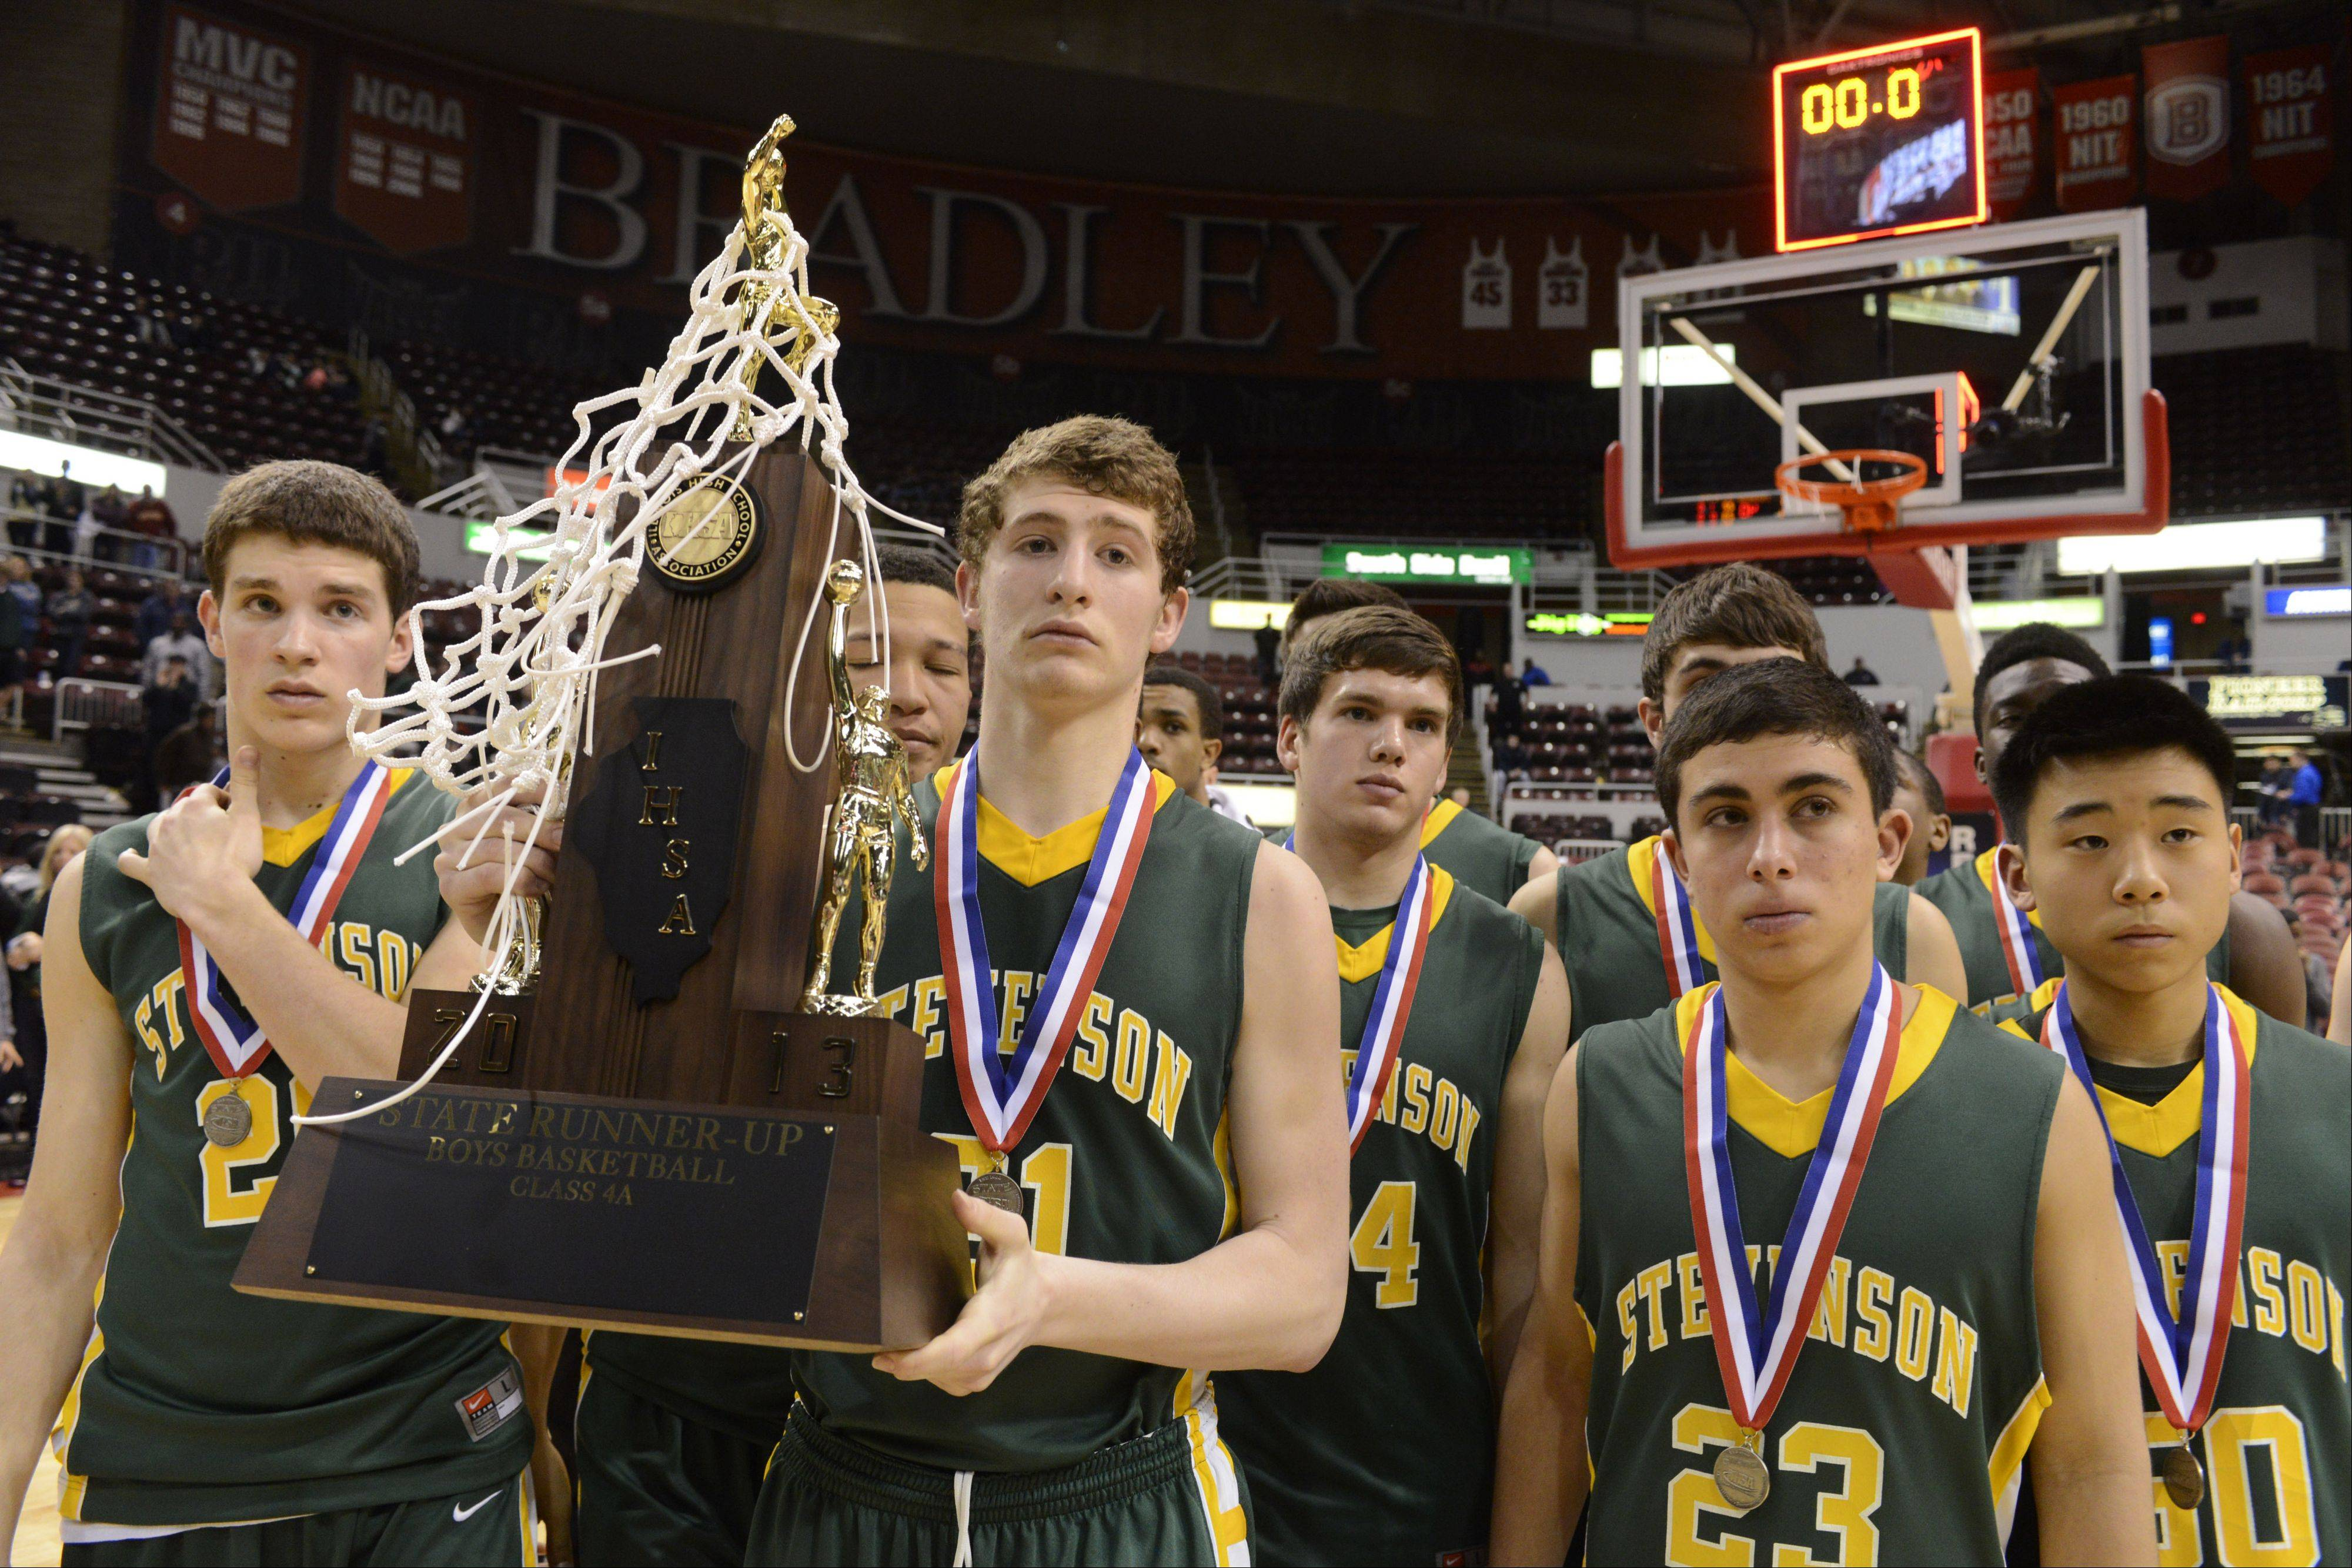 Stevenson's Andrew Stempel holds the team's second-place trophy following the Class 4A state championship game at Carver Arena in Peoria, where the Patriots fell to Simeon on Saturday night.